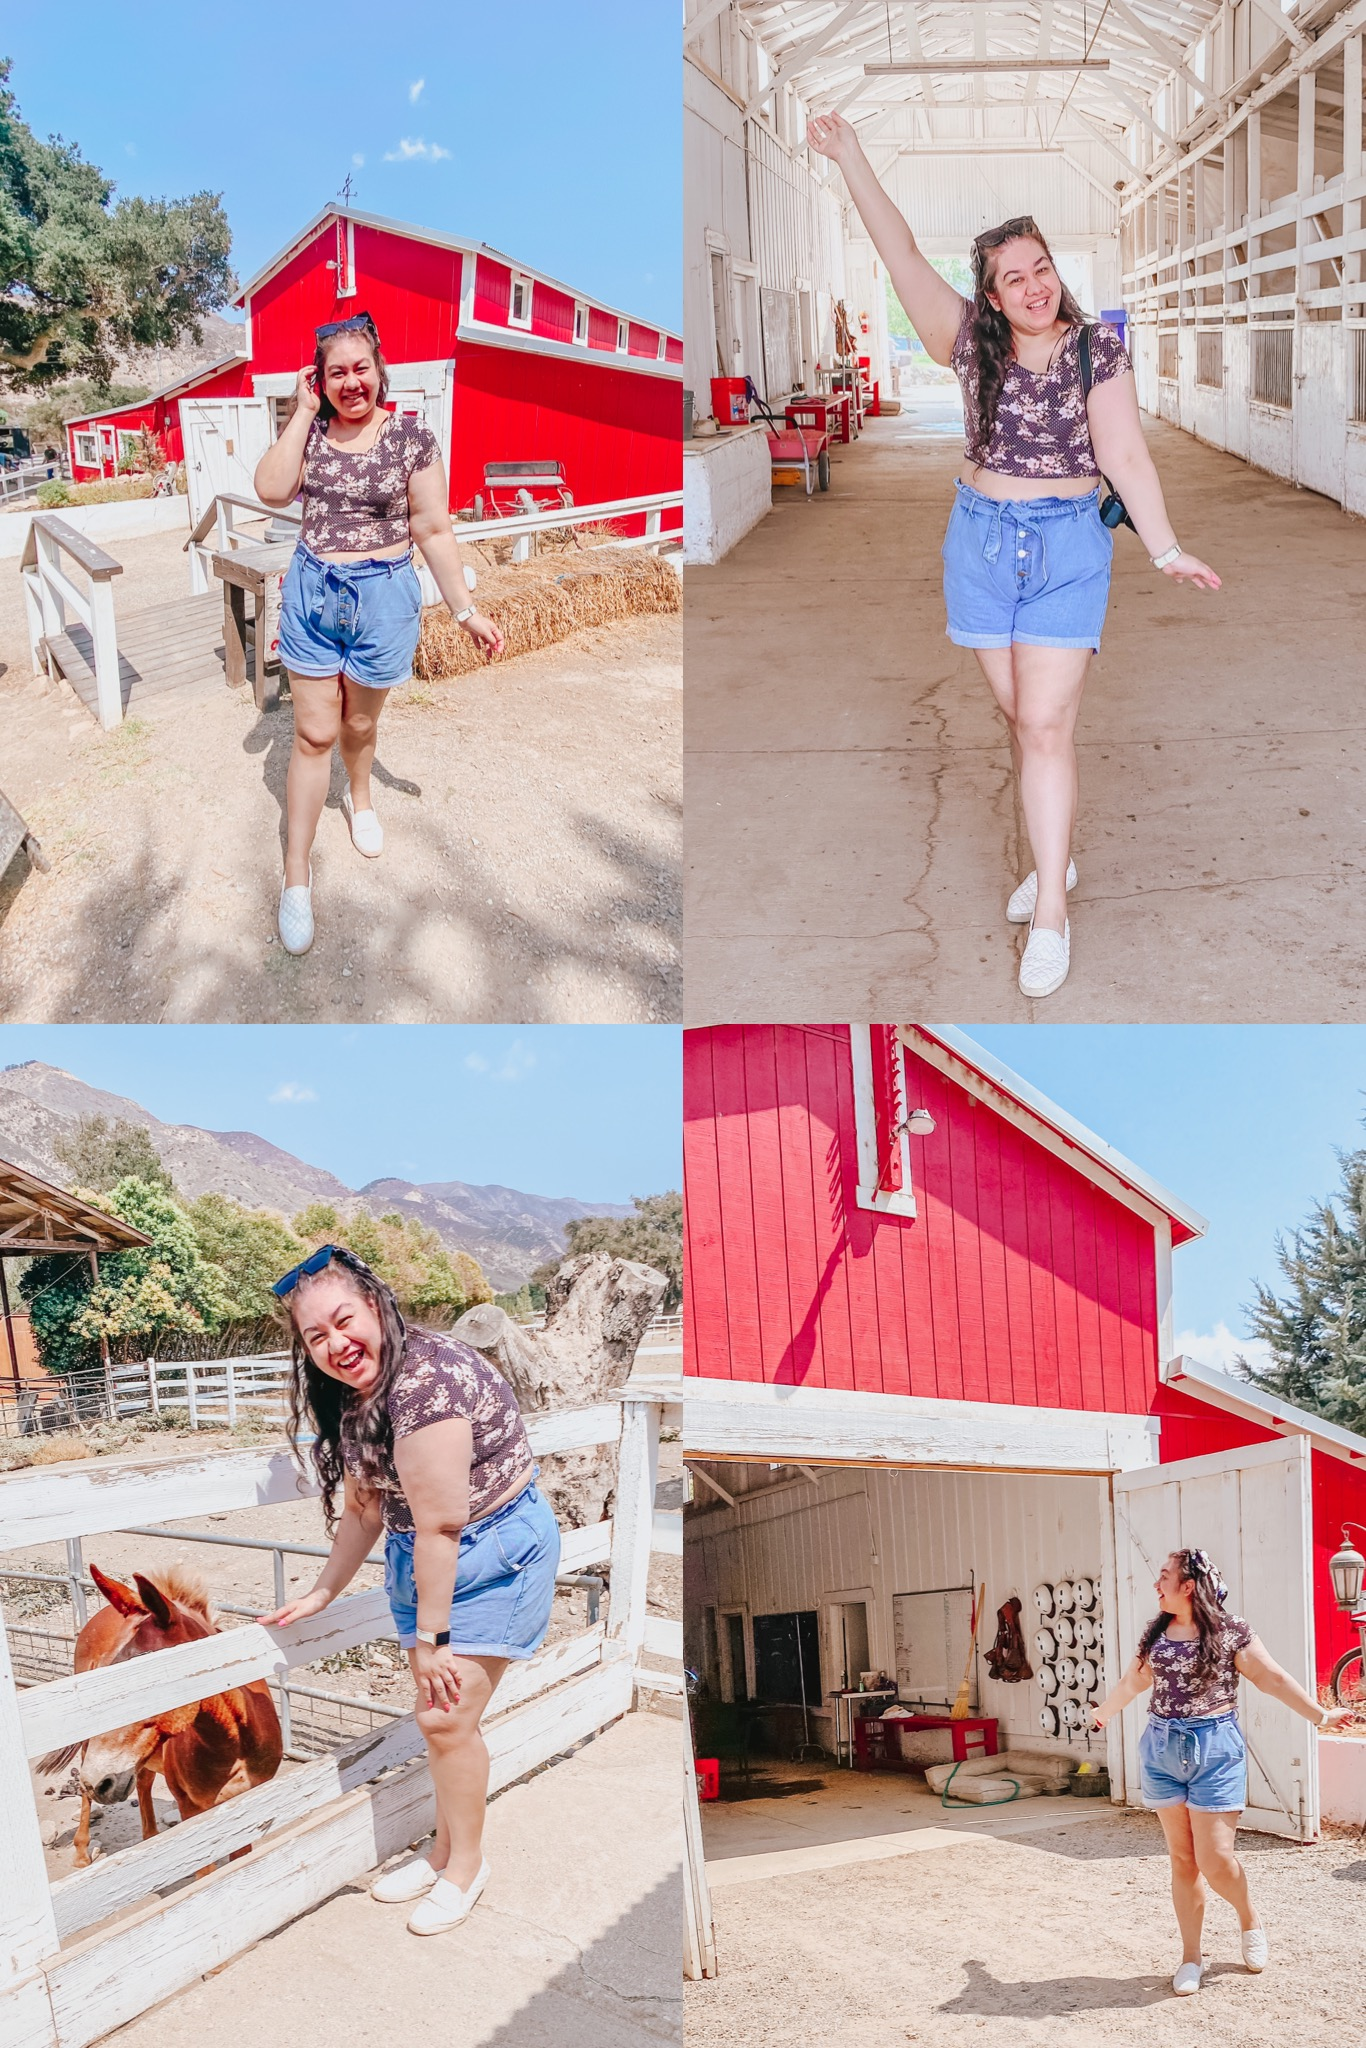 The Outfit I Wore For a Day At a Ranch